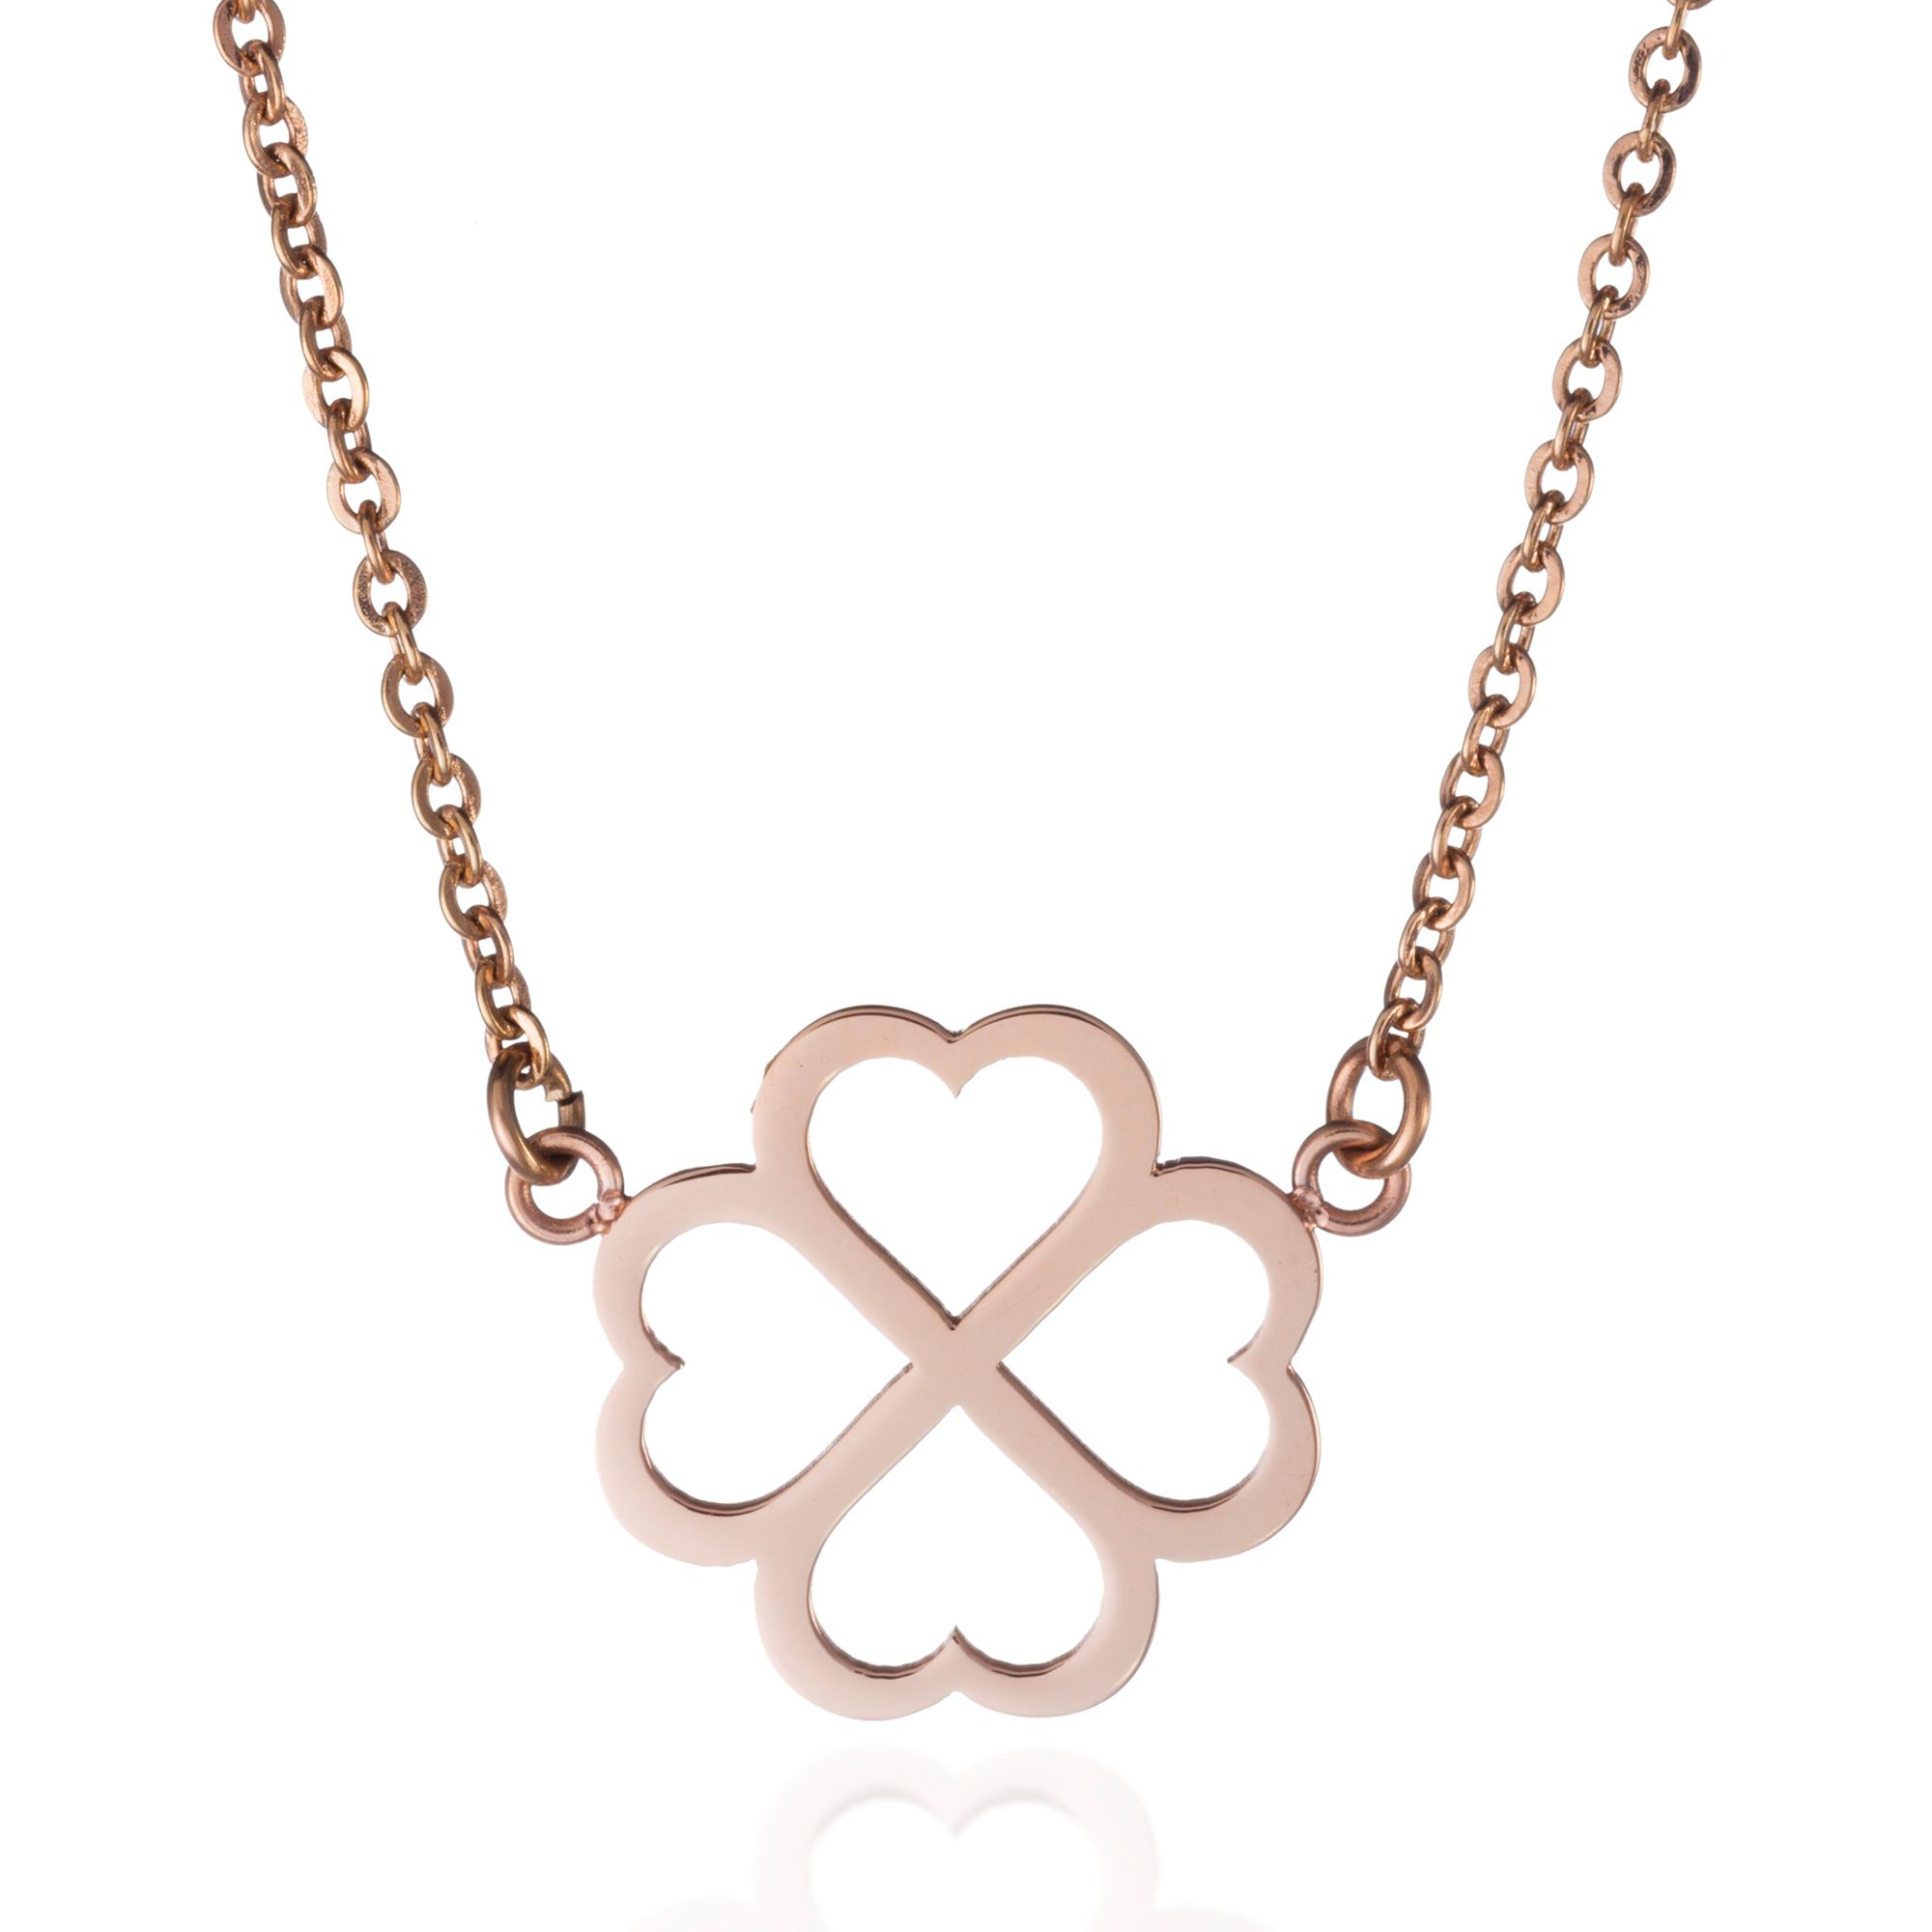 Clover Necklace, Rose Gold In Most Recent Sparkling Gift Locket Element Necklaces (View 12 of 25)